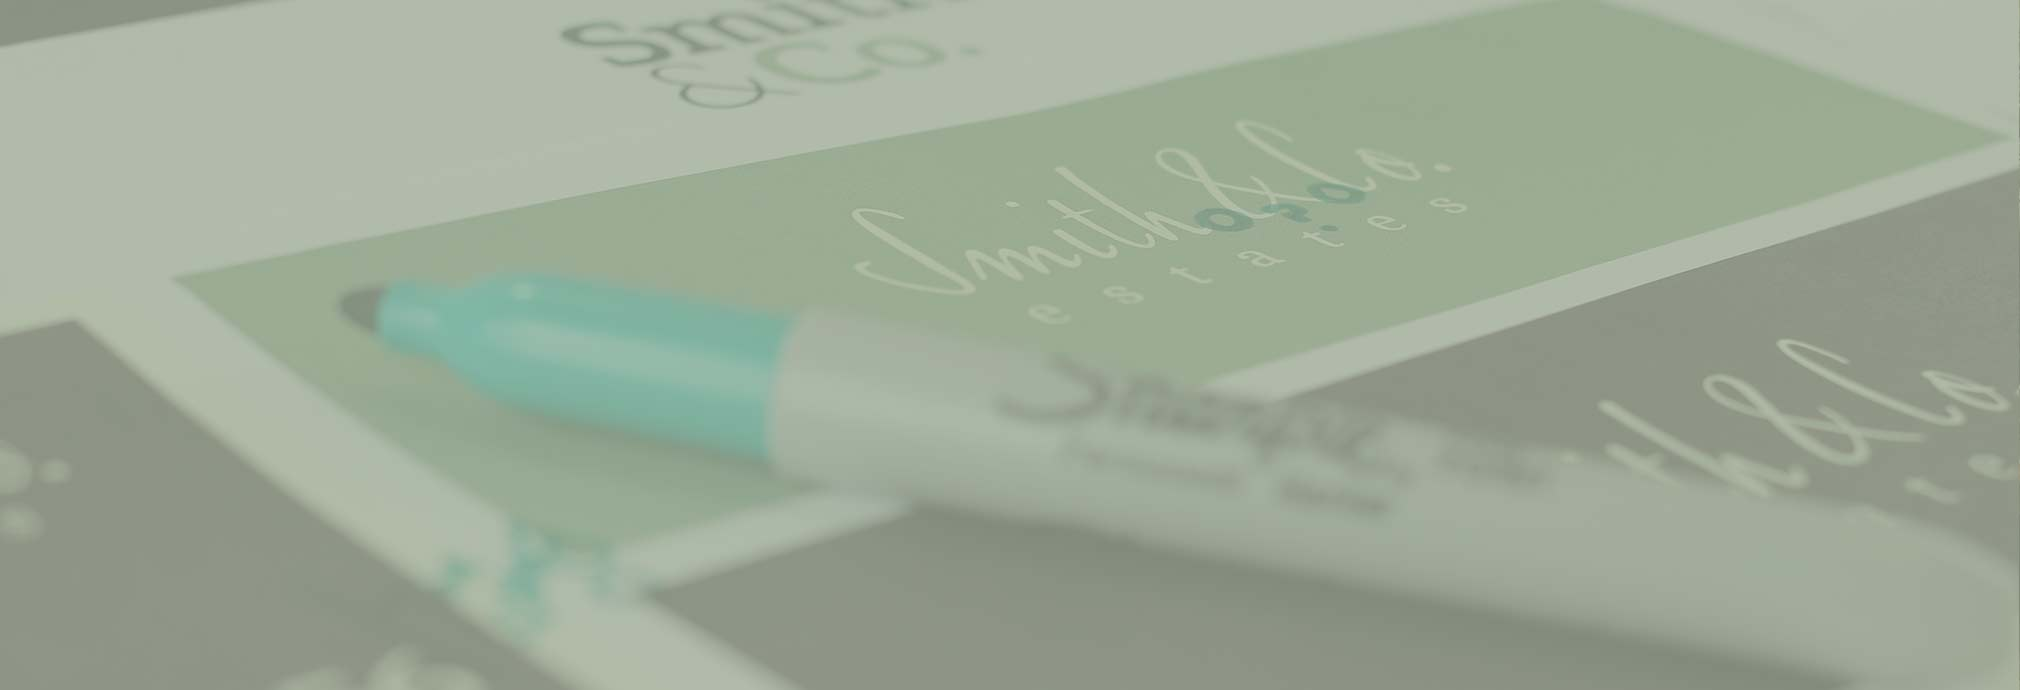 Estate Agency Branding for Smith & Co